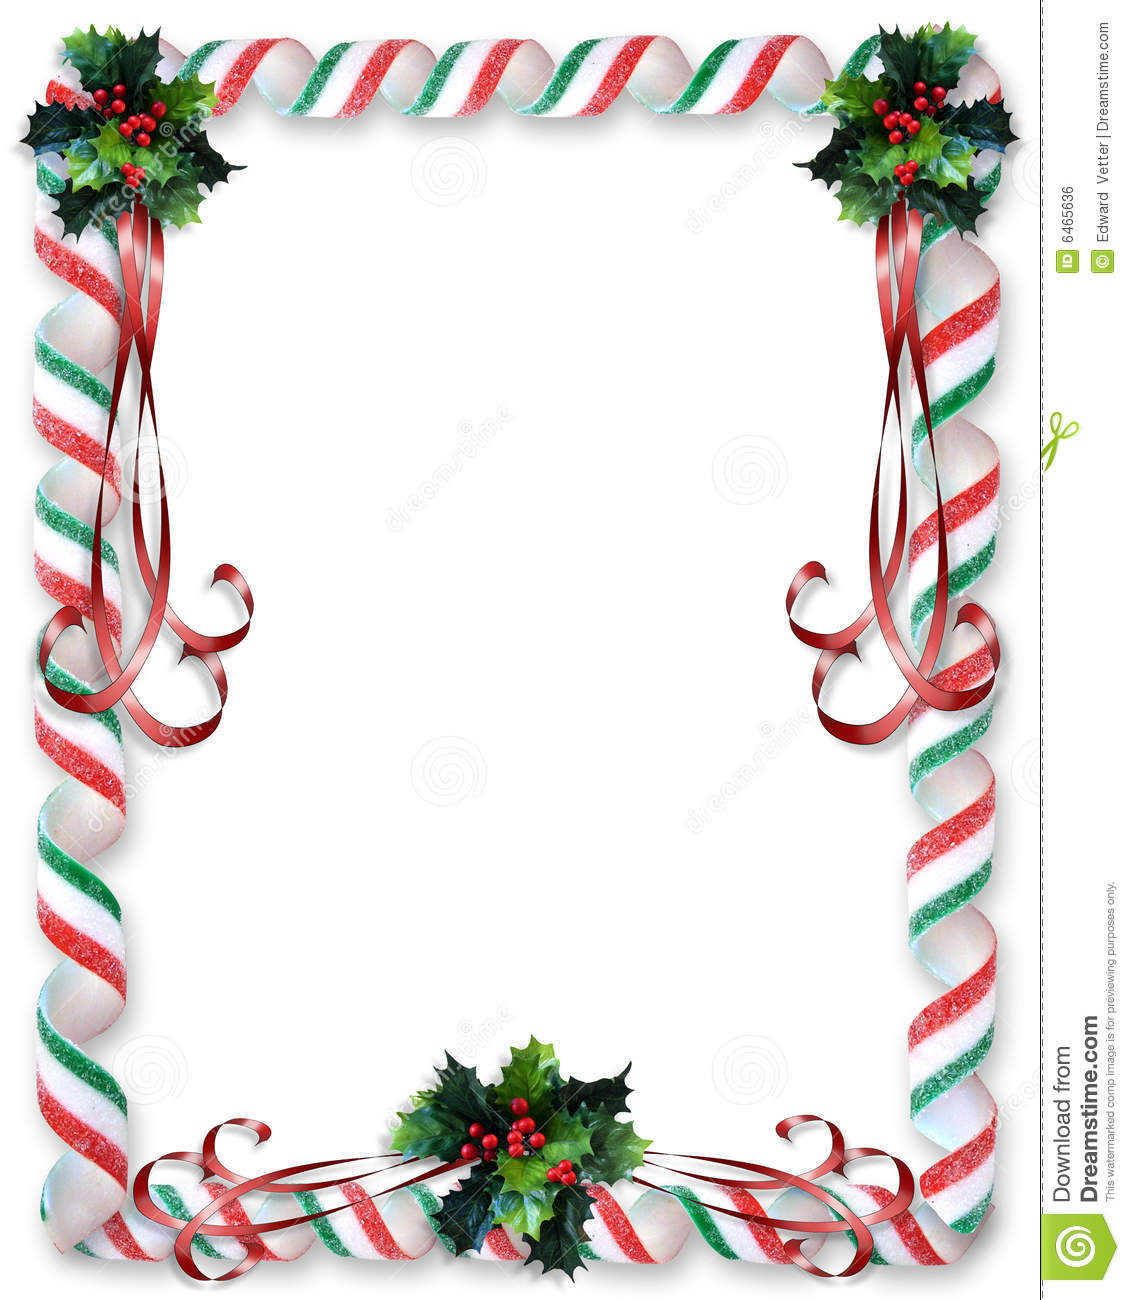 Christmas Candy Border  Christmas Candy And Holly Border Stock Illustration